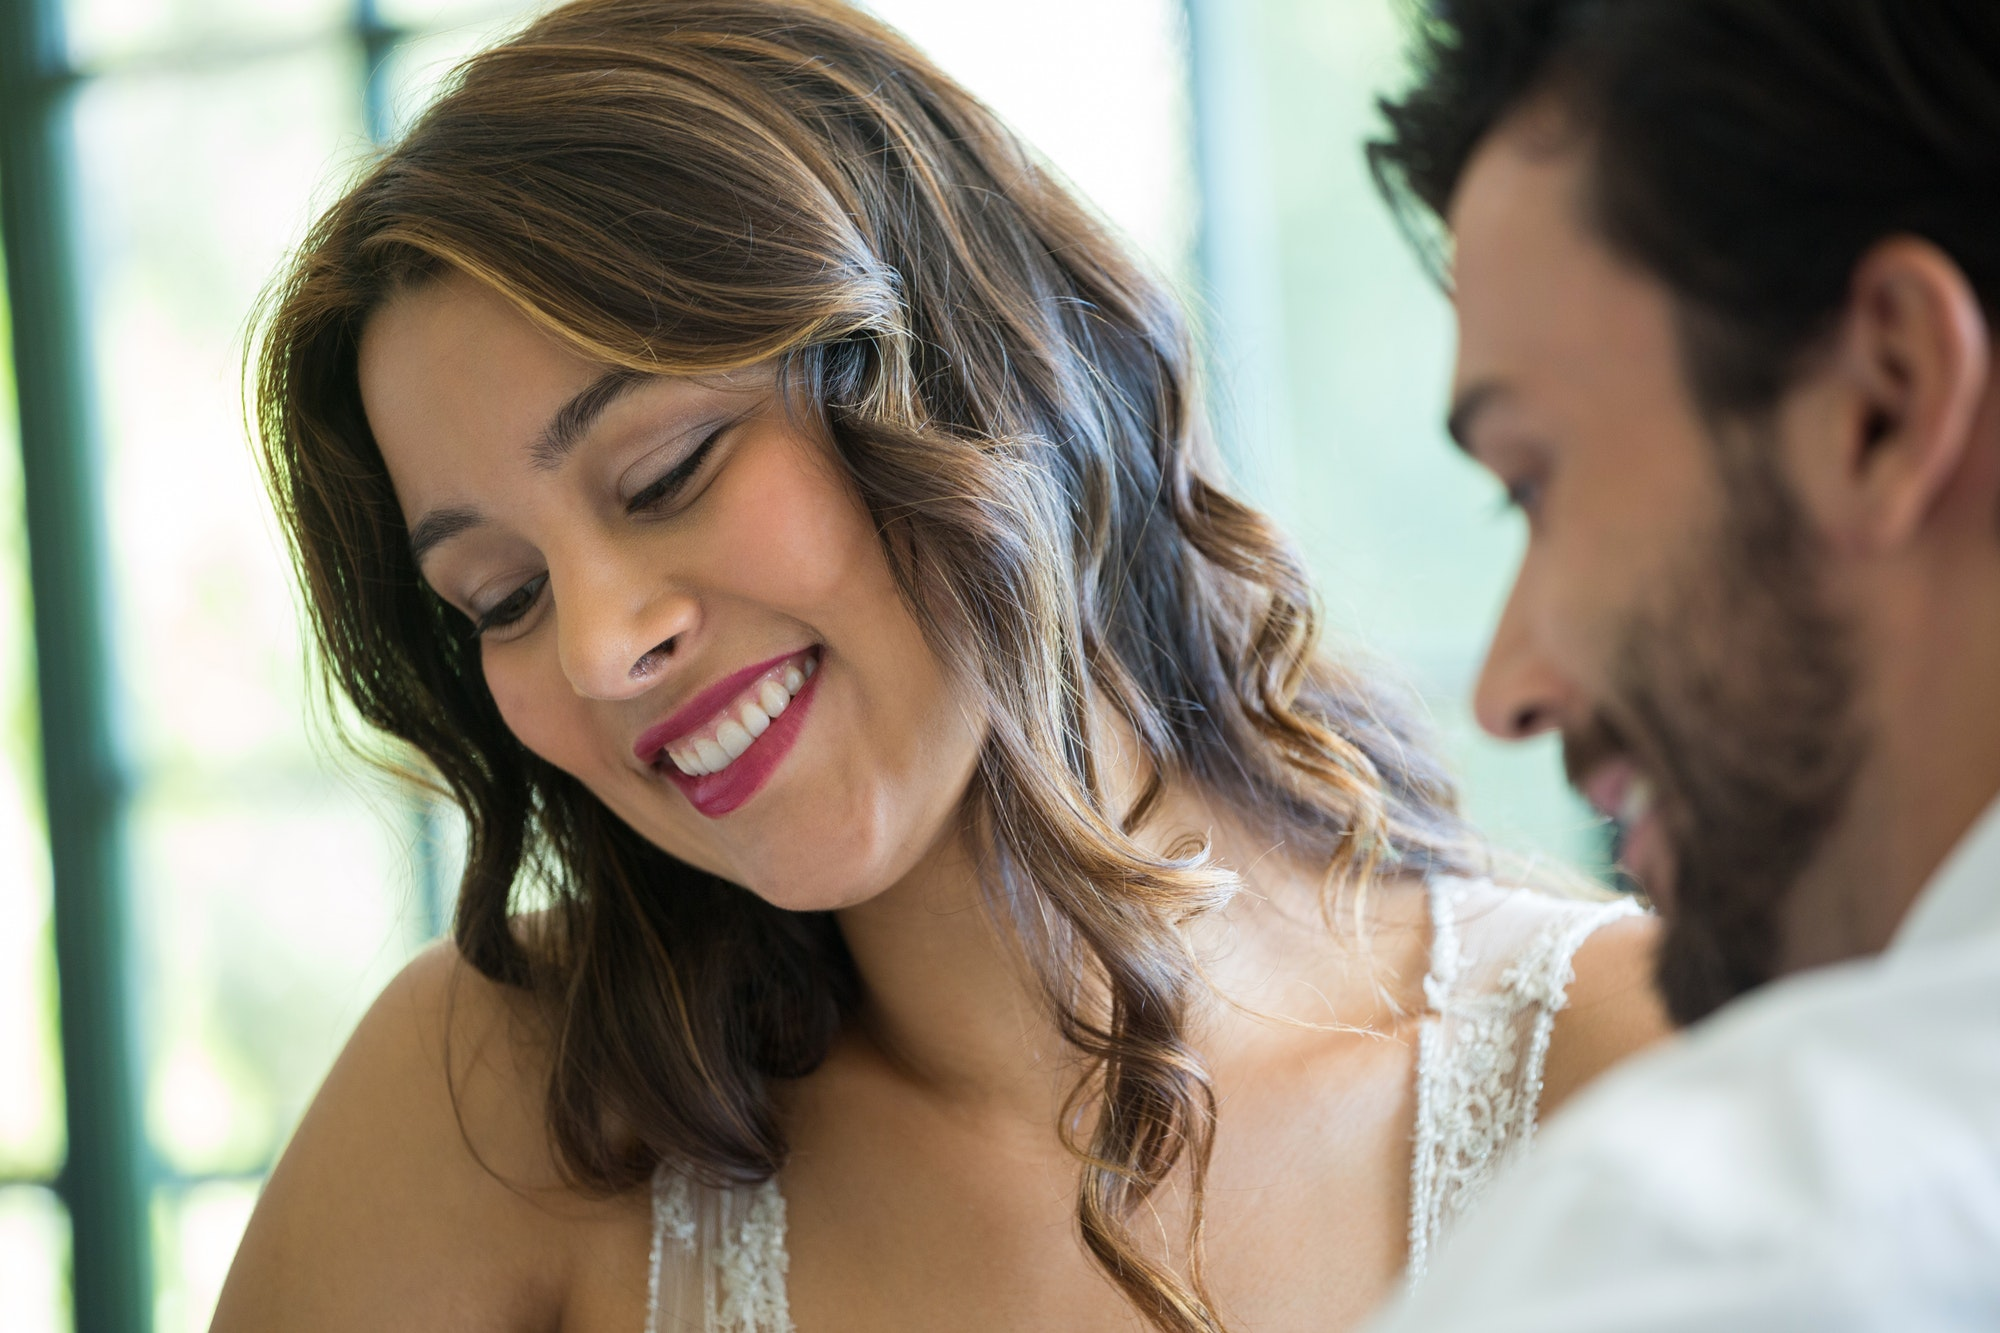 Smiling woman dating with man in restaurant